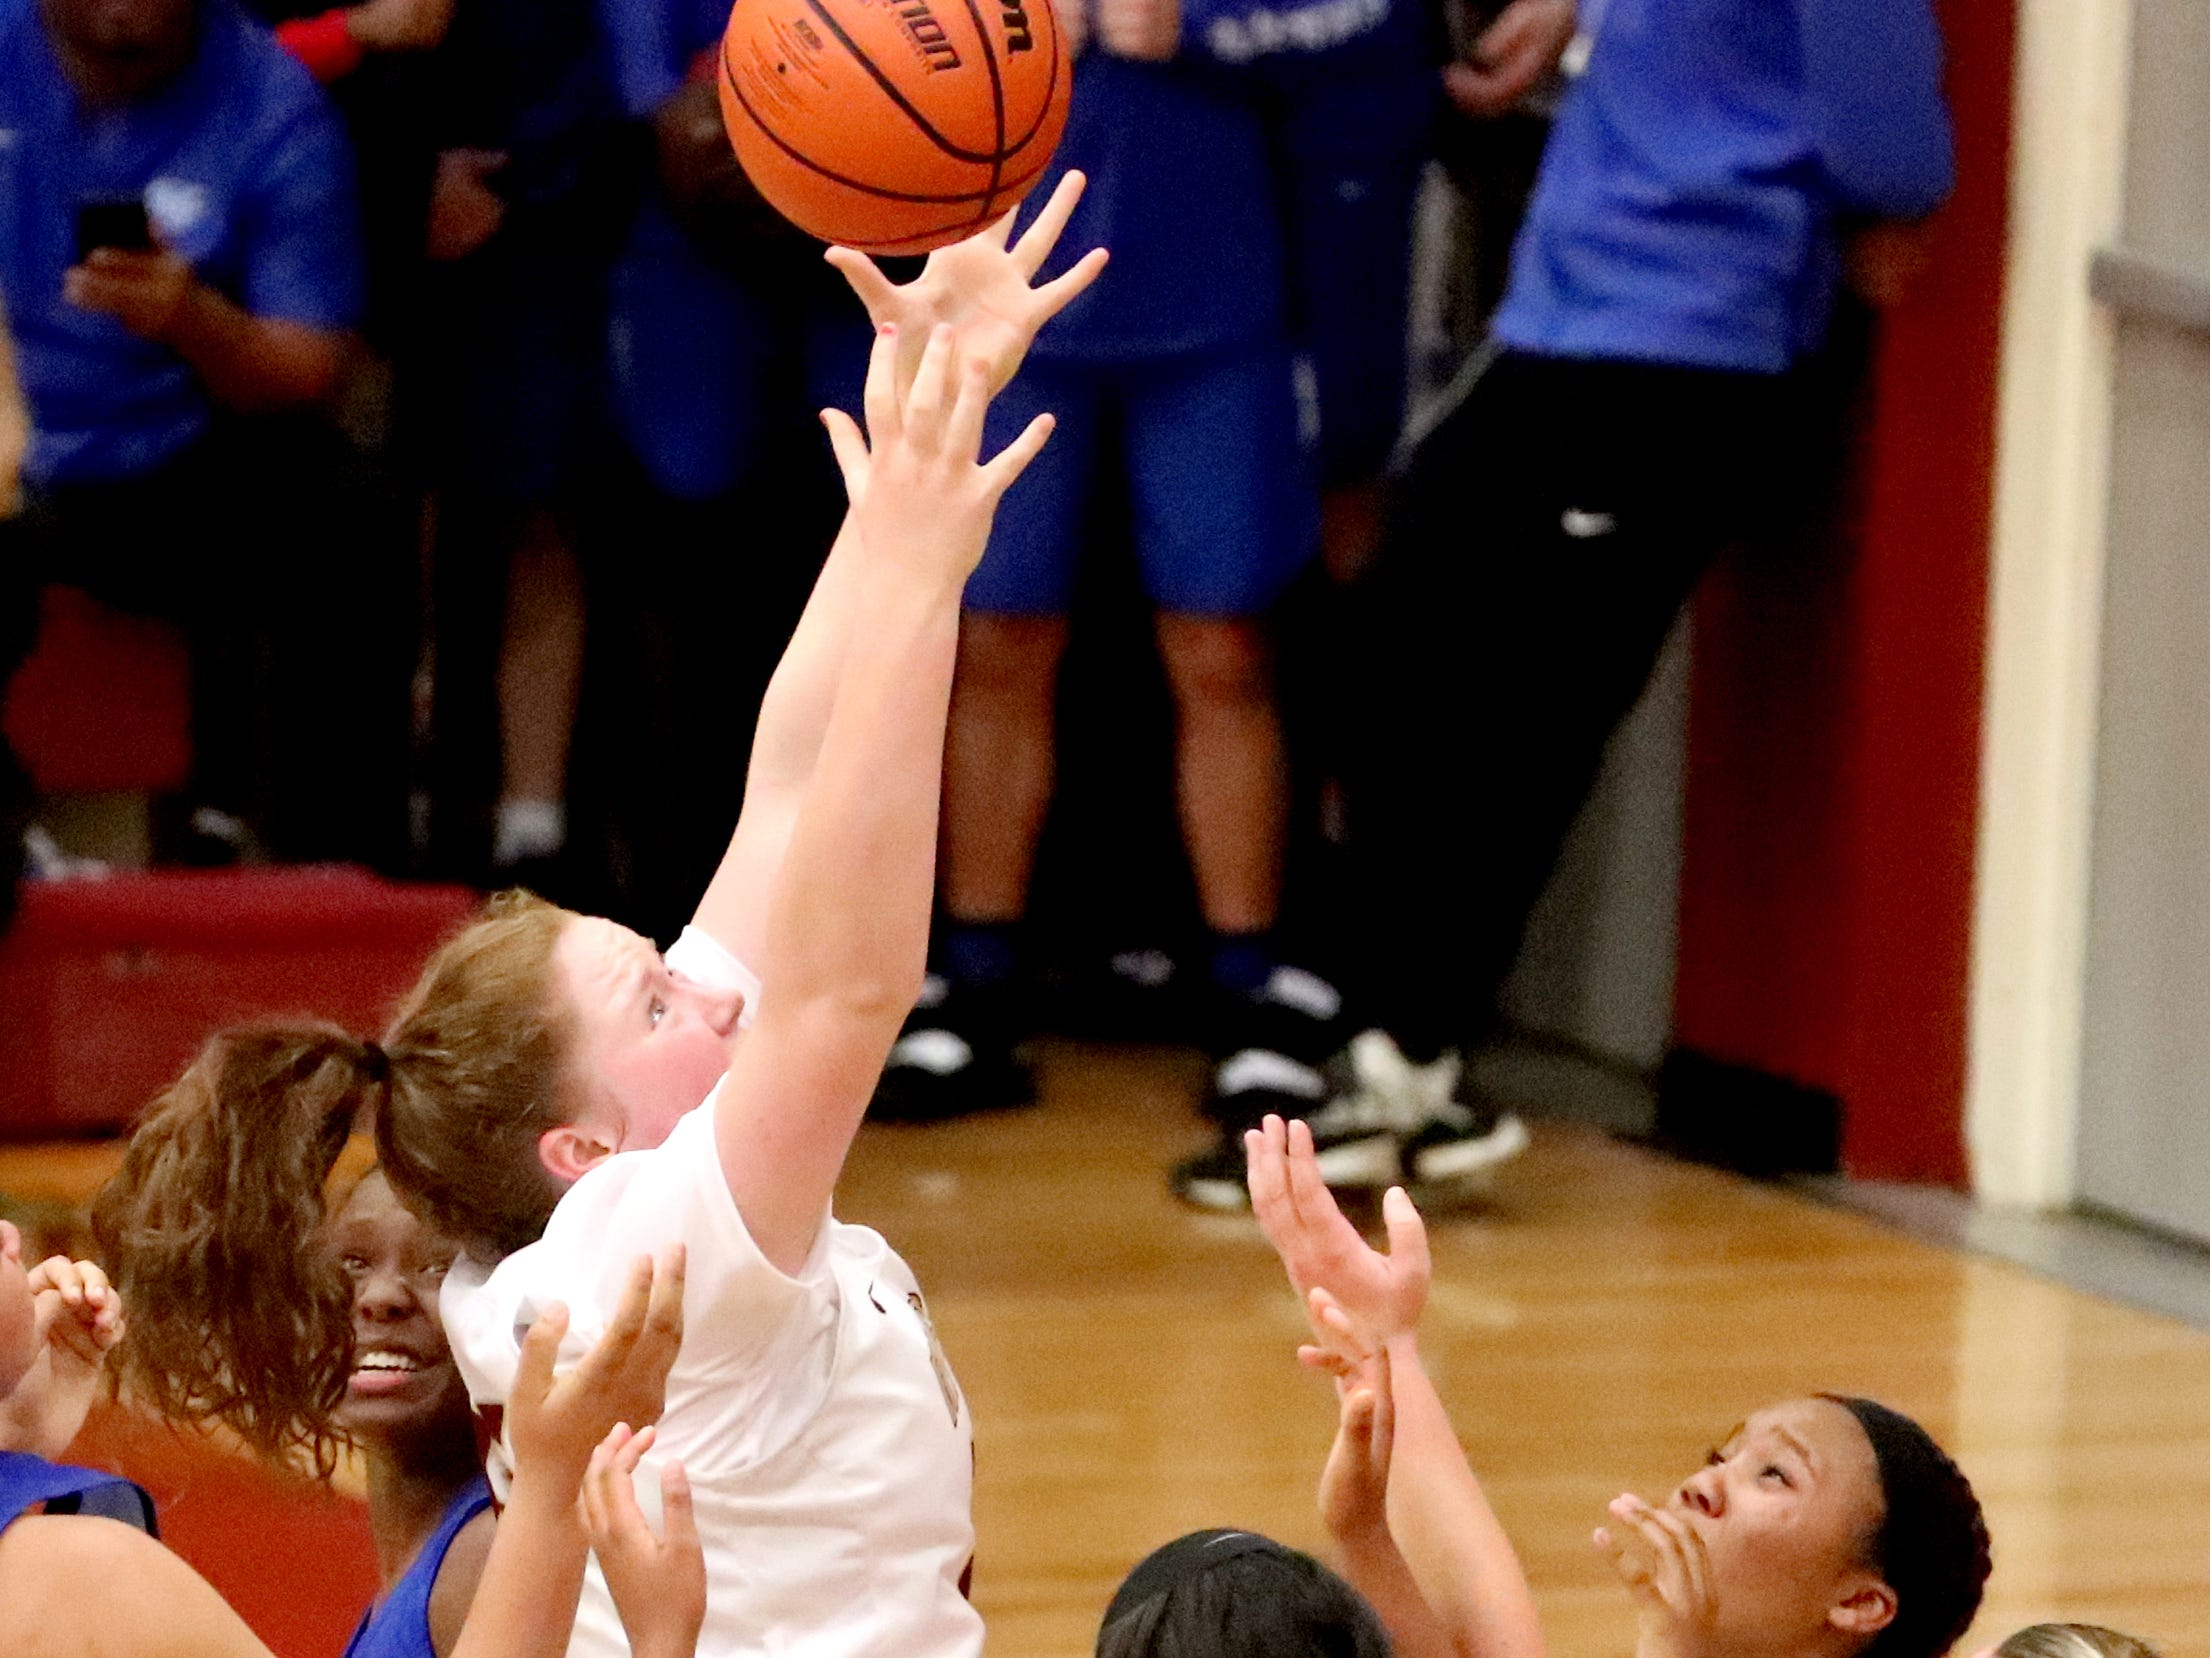 RiverdaleÕs Katelyn Worely (55) goes up for a rebound during the game against Lebanon on Friday, Nov. 30, 2018.